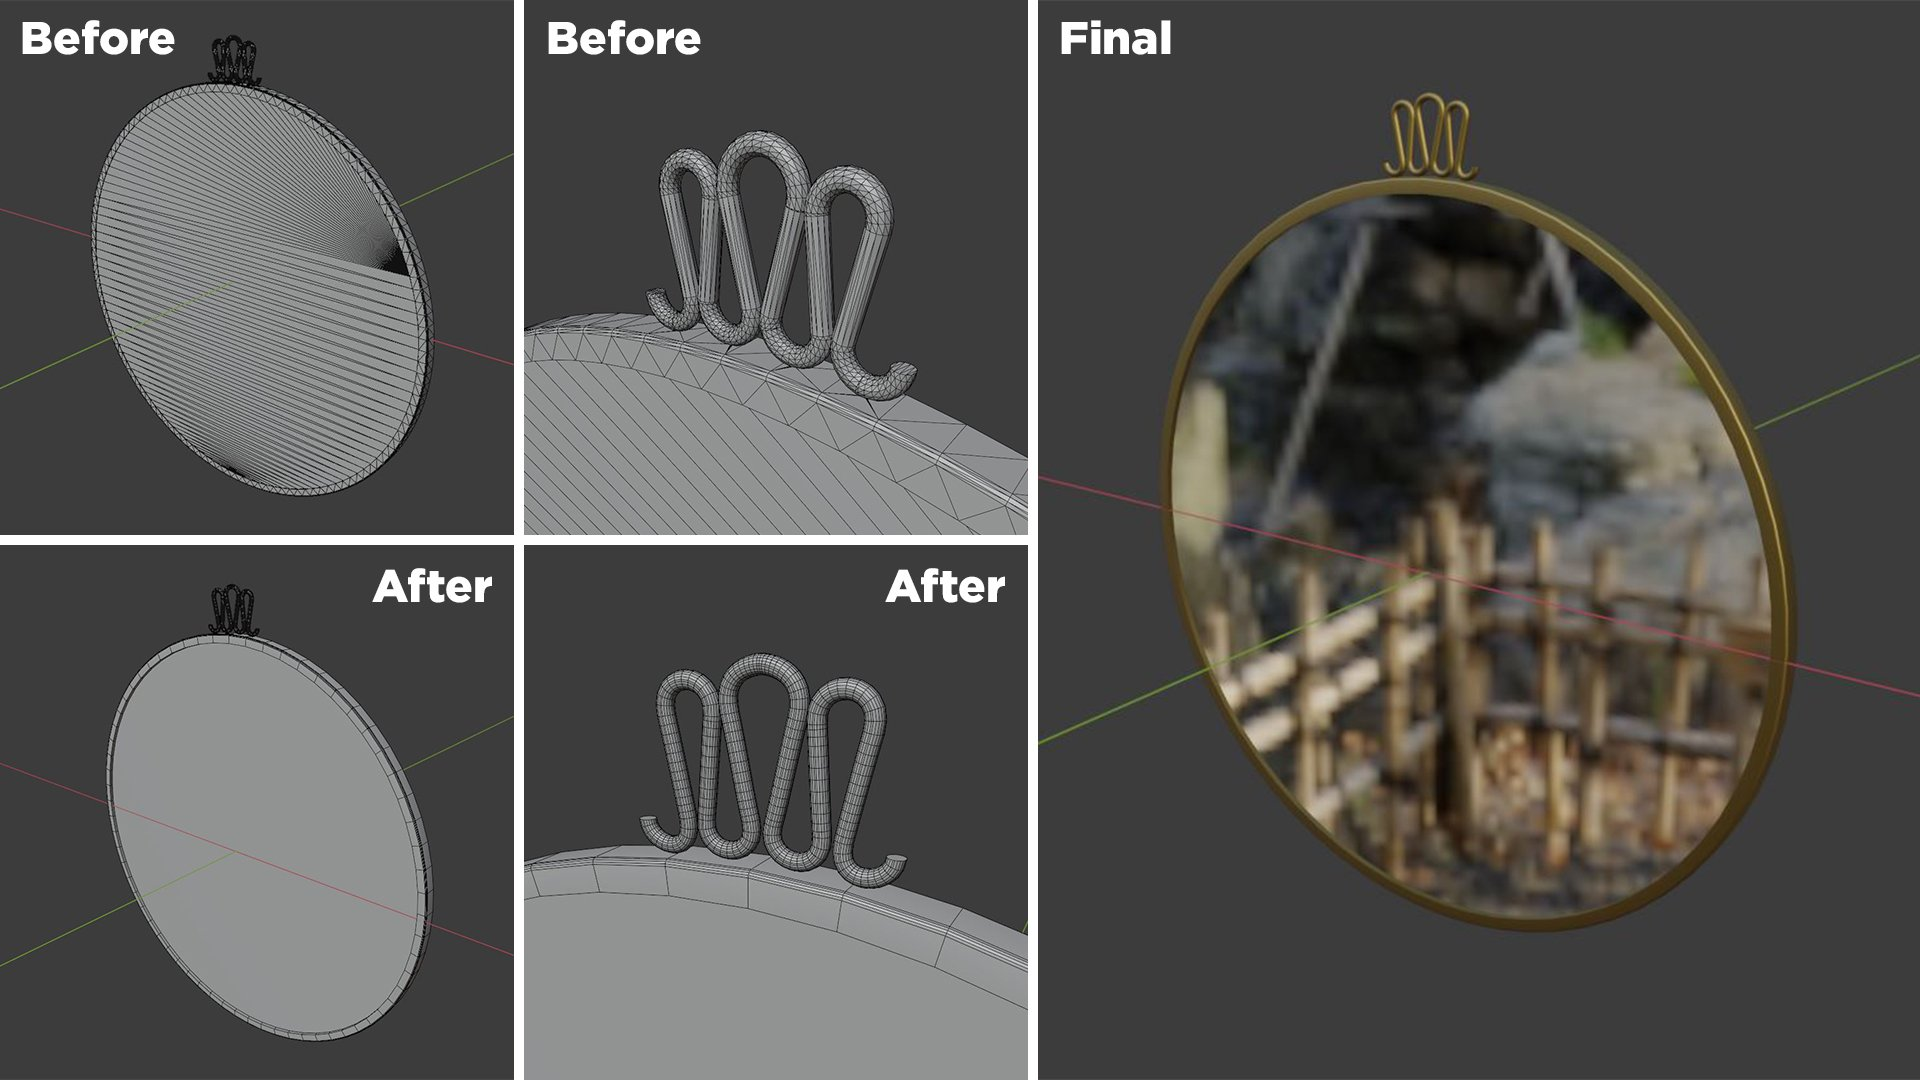 3D Modeling Process with Retopology